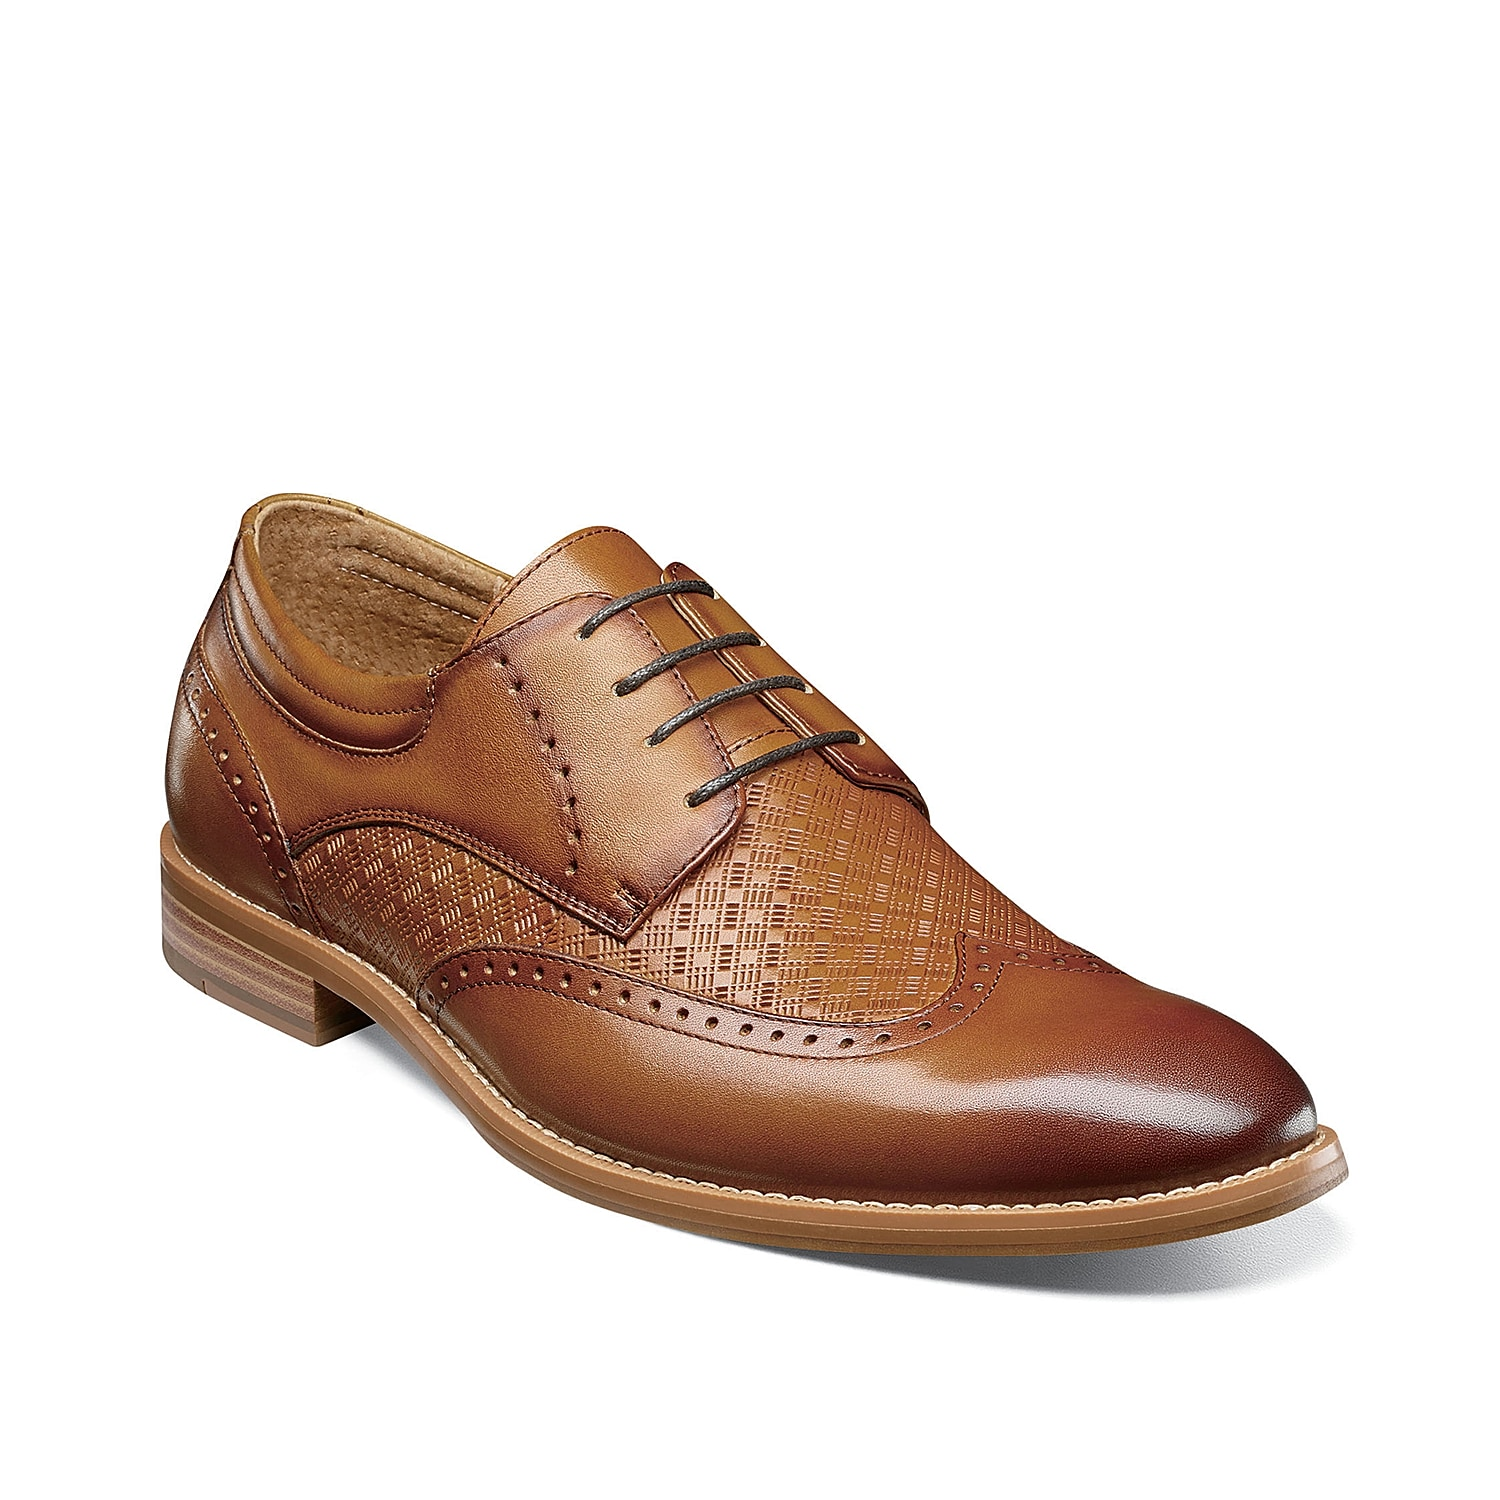 Rich detailing brings a distinguished quality to the Fallon oxfords from Stacy Adams. The burnished wingtip toe, intricate perforations, stacked heel, and mix of embossing bring together a noteworthy dress shoe.